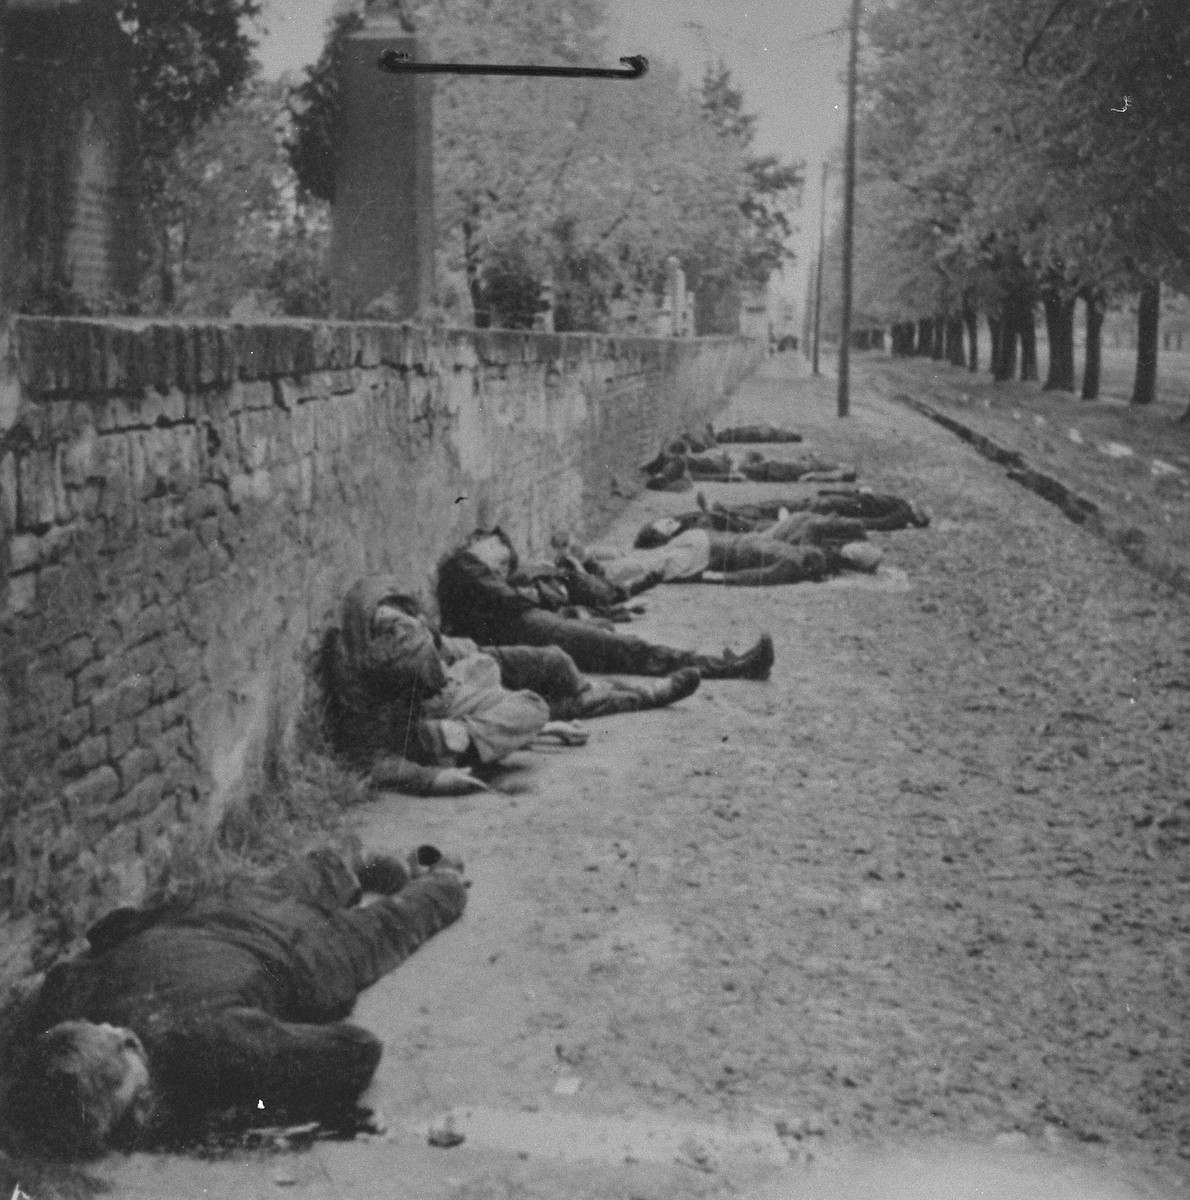 The bodies of civilians shot by German troops lie next to the wall of the Pancevo city cemetery.